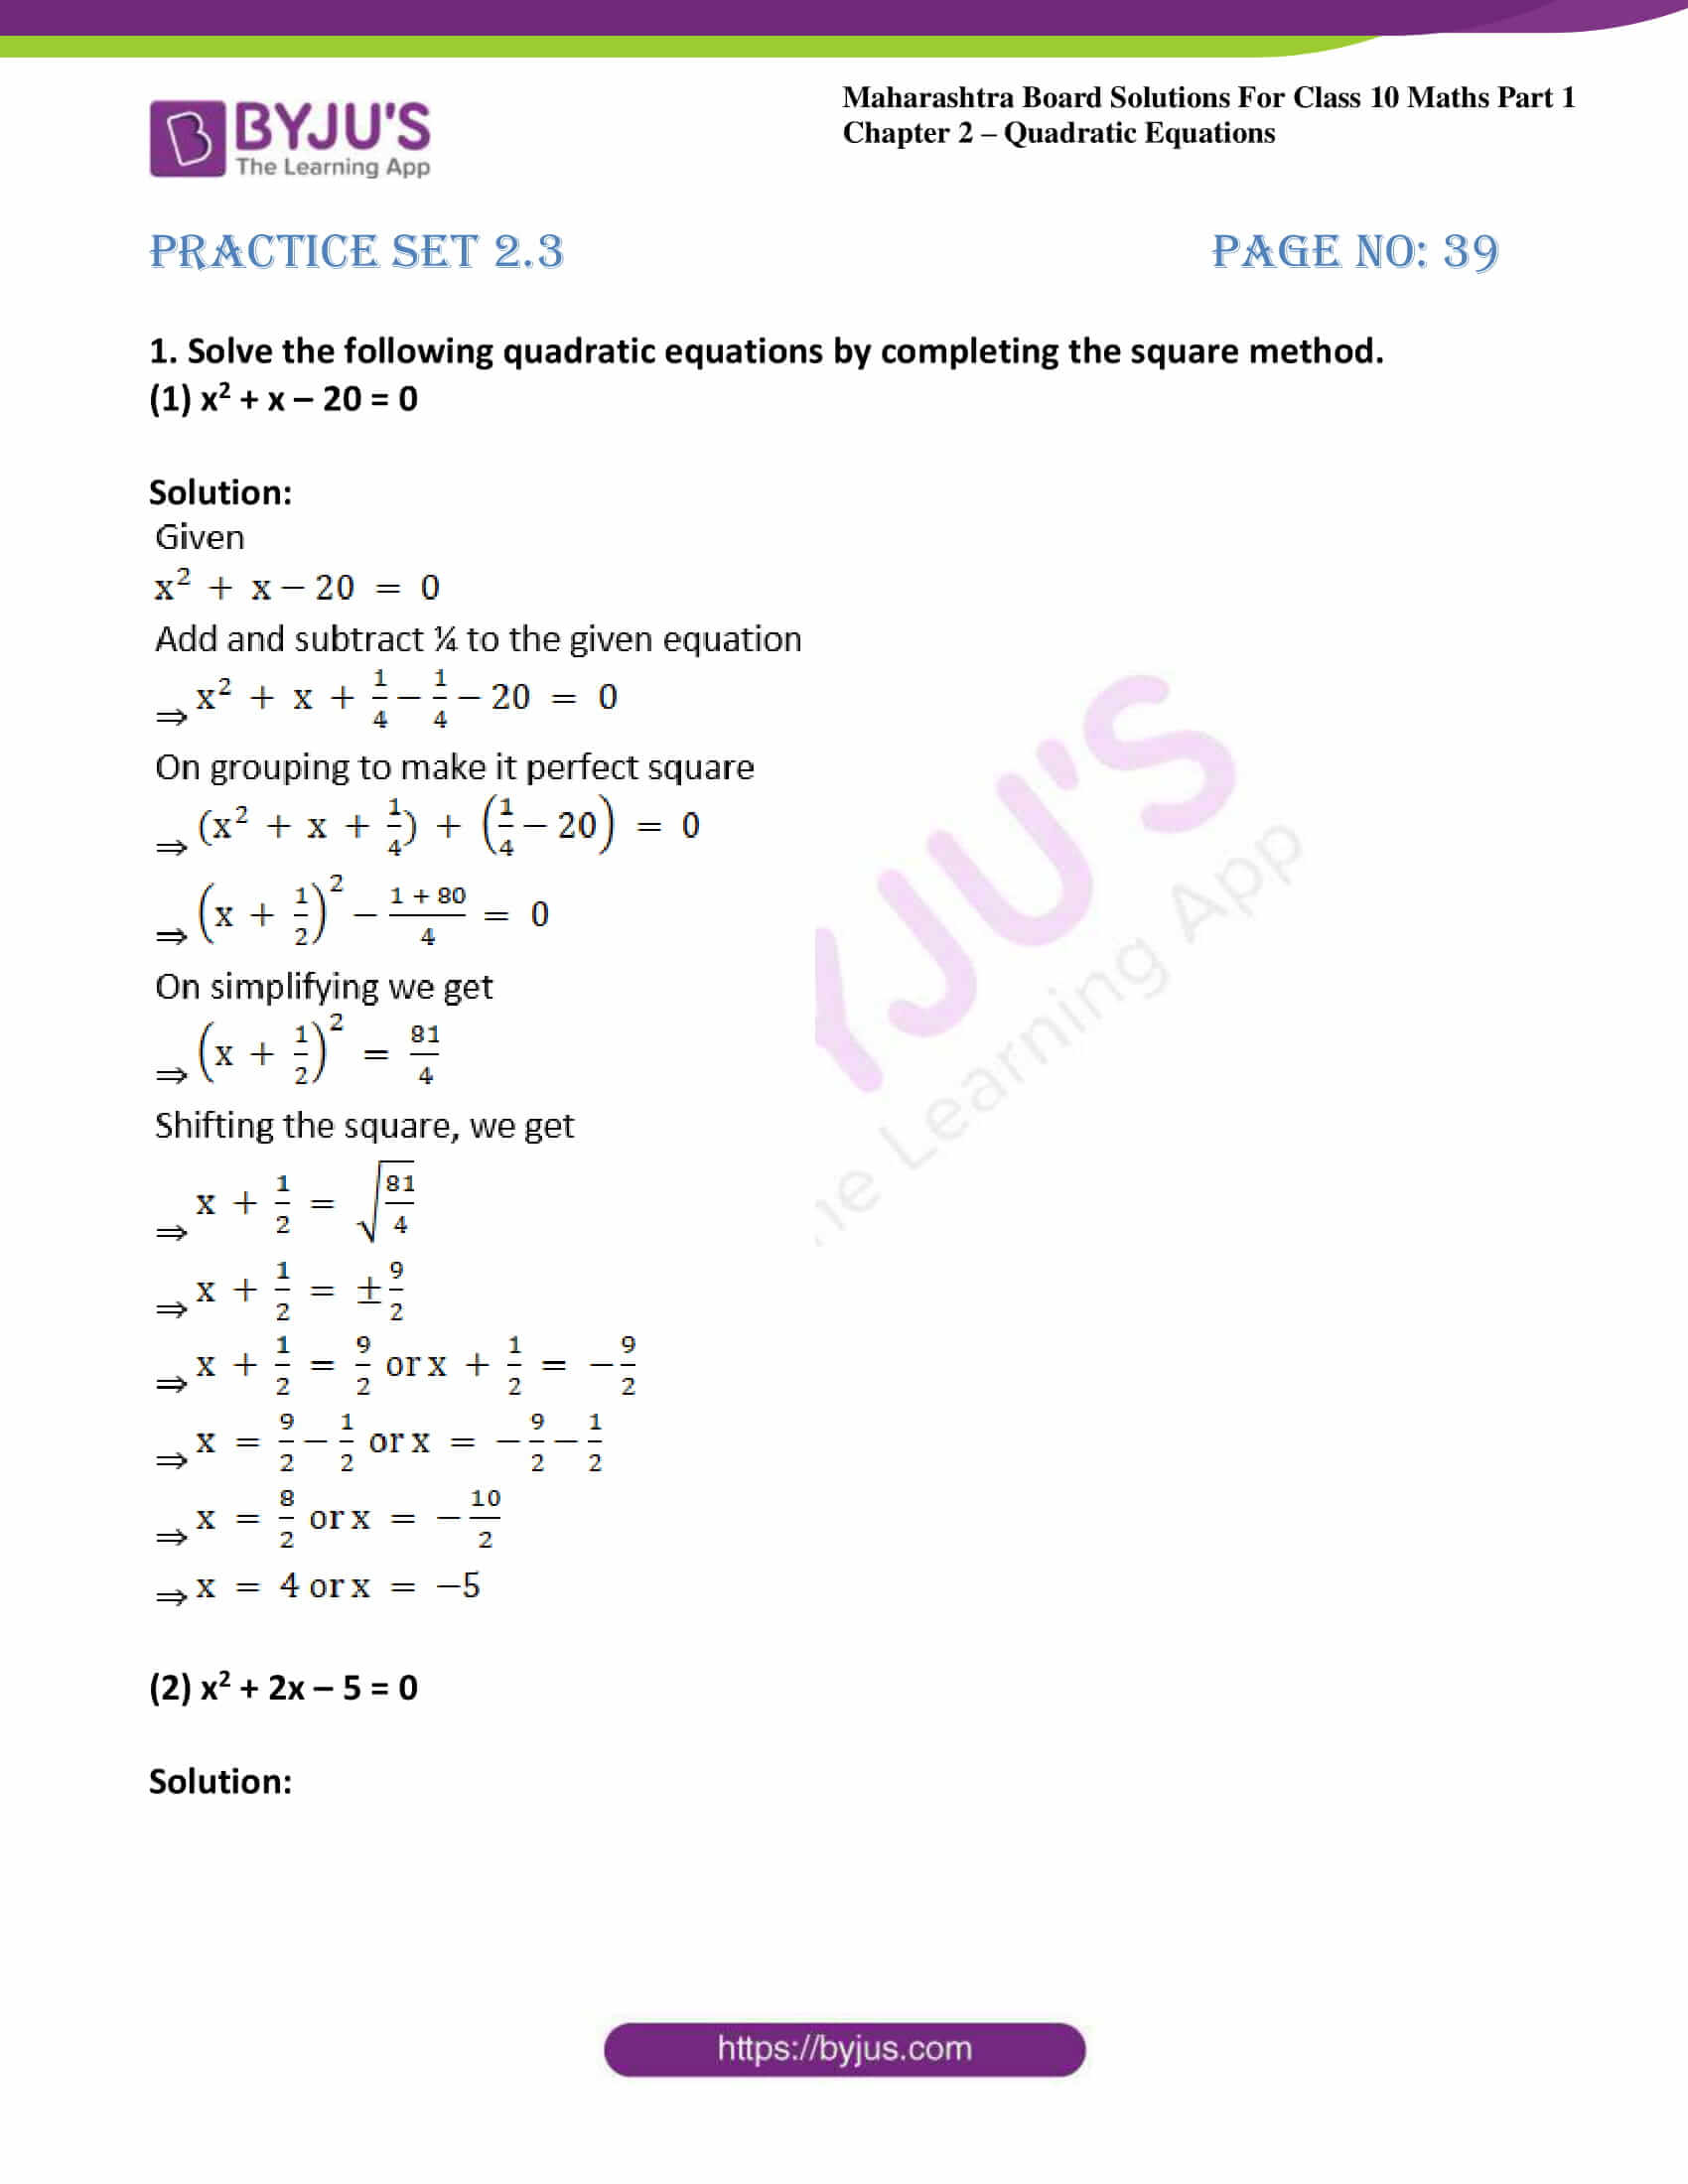 msbshse solutions class 10 maths part 1 chapter 2 11